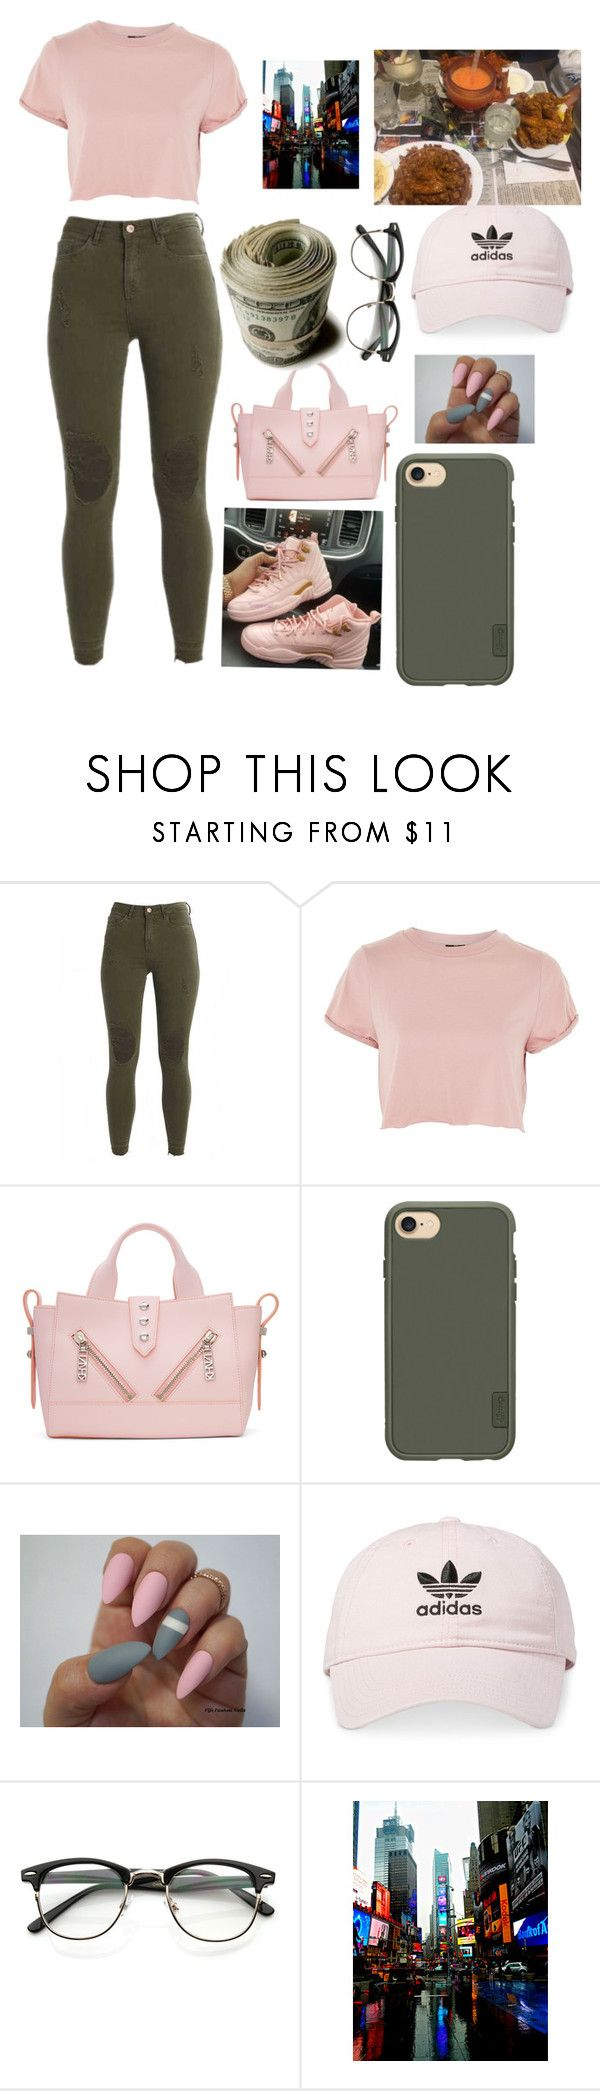 """"""""""" by queenbles ❤ liked on Polyvore featuring Topshop, Kenzo, Casetify and adidas"""